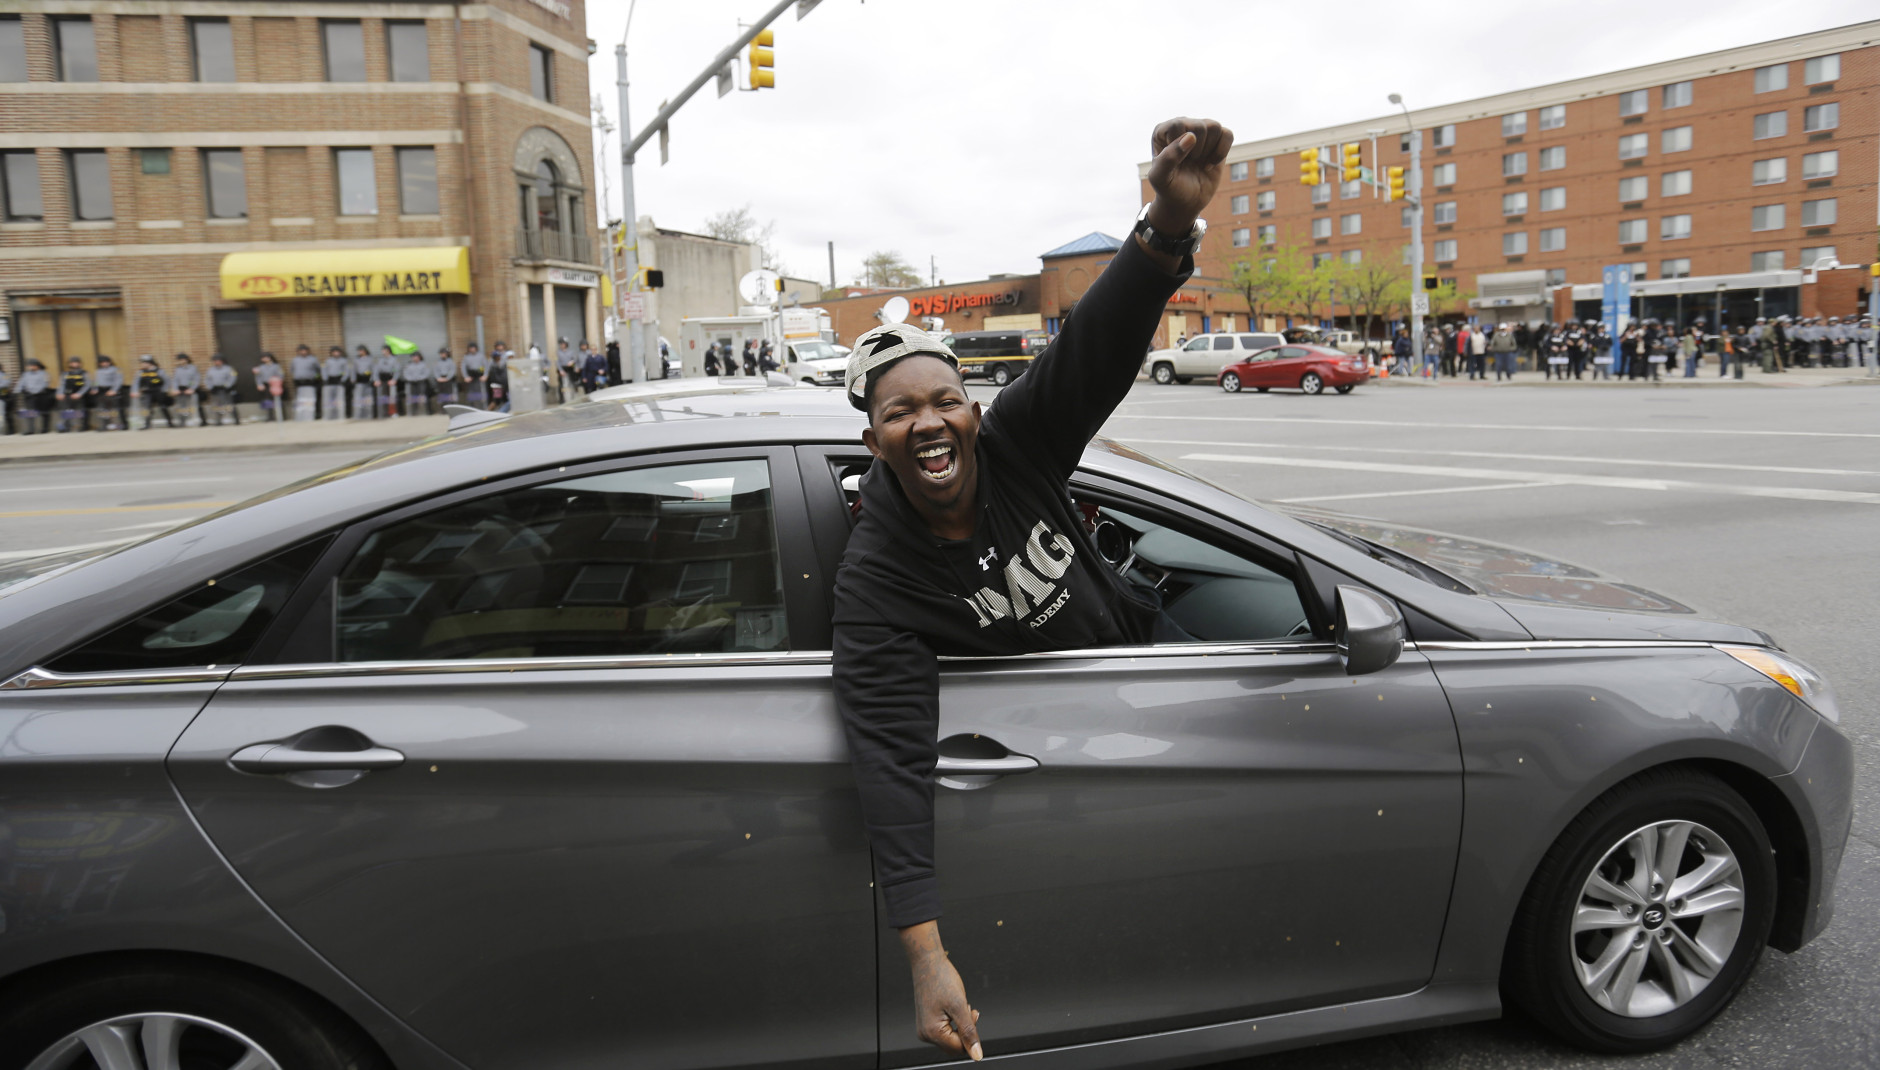 A passing motorist celebrates in the intersection where some of Monday's riots occurred on Friday, May 1, 2015, after State's Attorney Marilyn J. Mosby announced criminal charges against all six officers suspended after Freddie Gray suffered a fatal spinal injury while in police custody in Baltimore.  Mosby announced the stiffest charge, second-degree depraved heart murder, against the driver of the police van. Other officers faced charges of involuntary manslaughter, assault and illegal arrest.  (AP Photo/David Goldman)